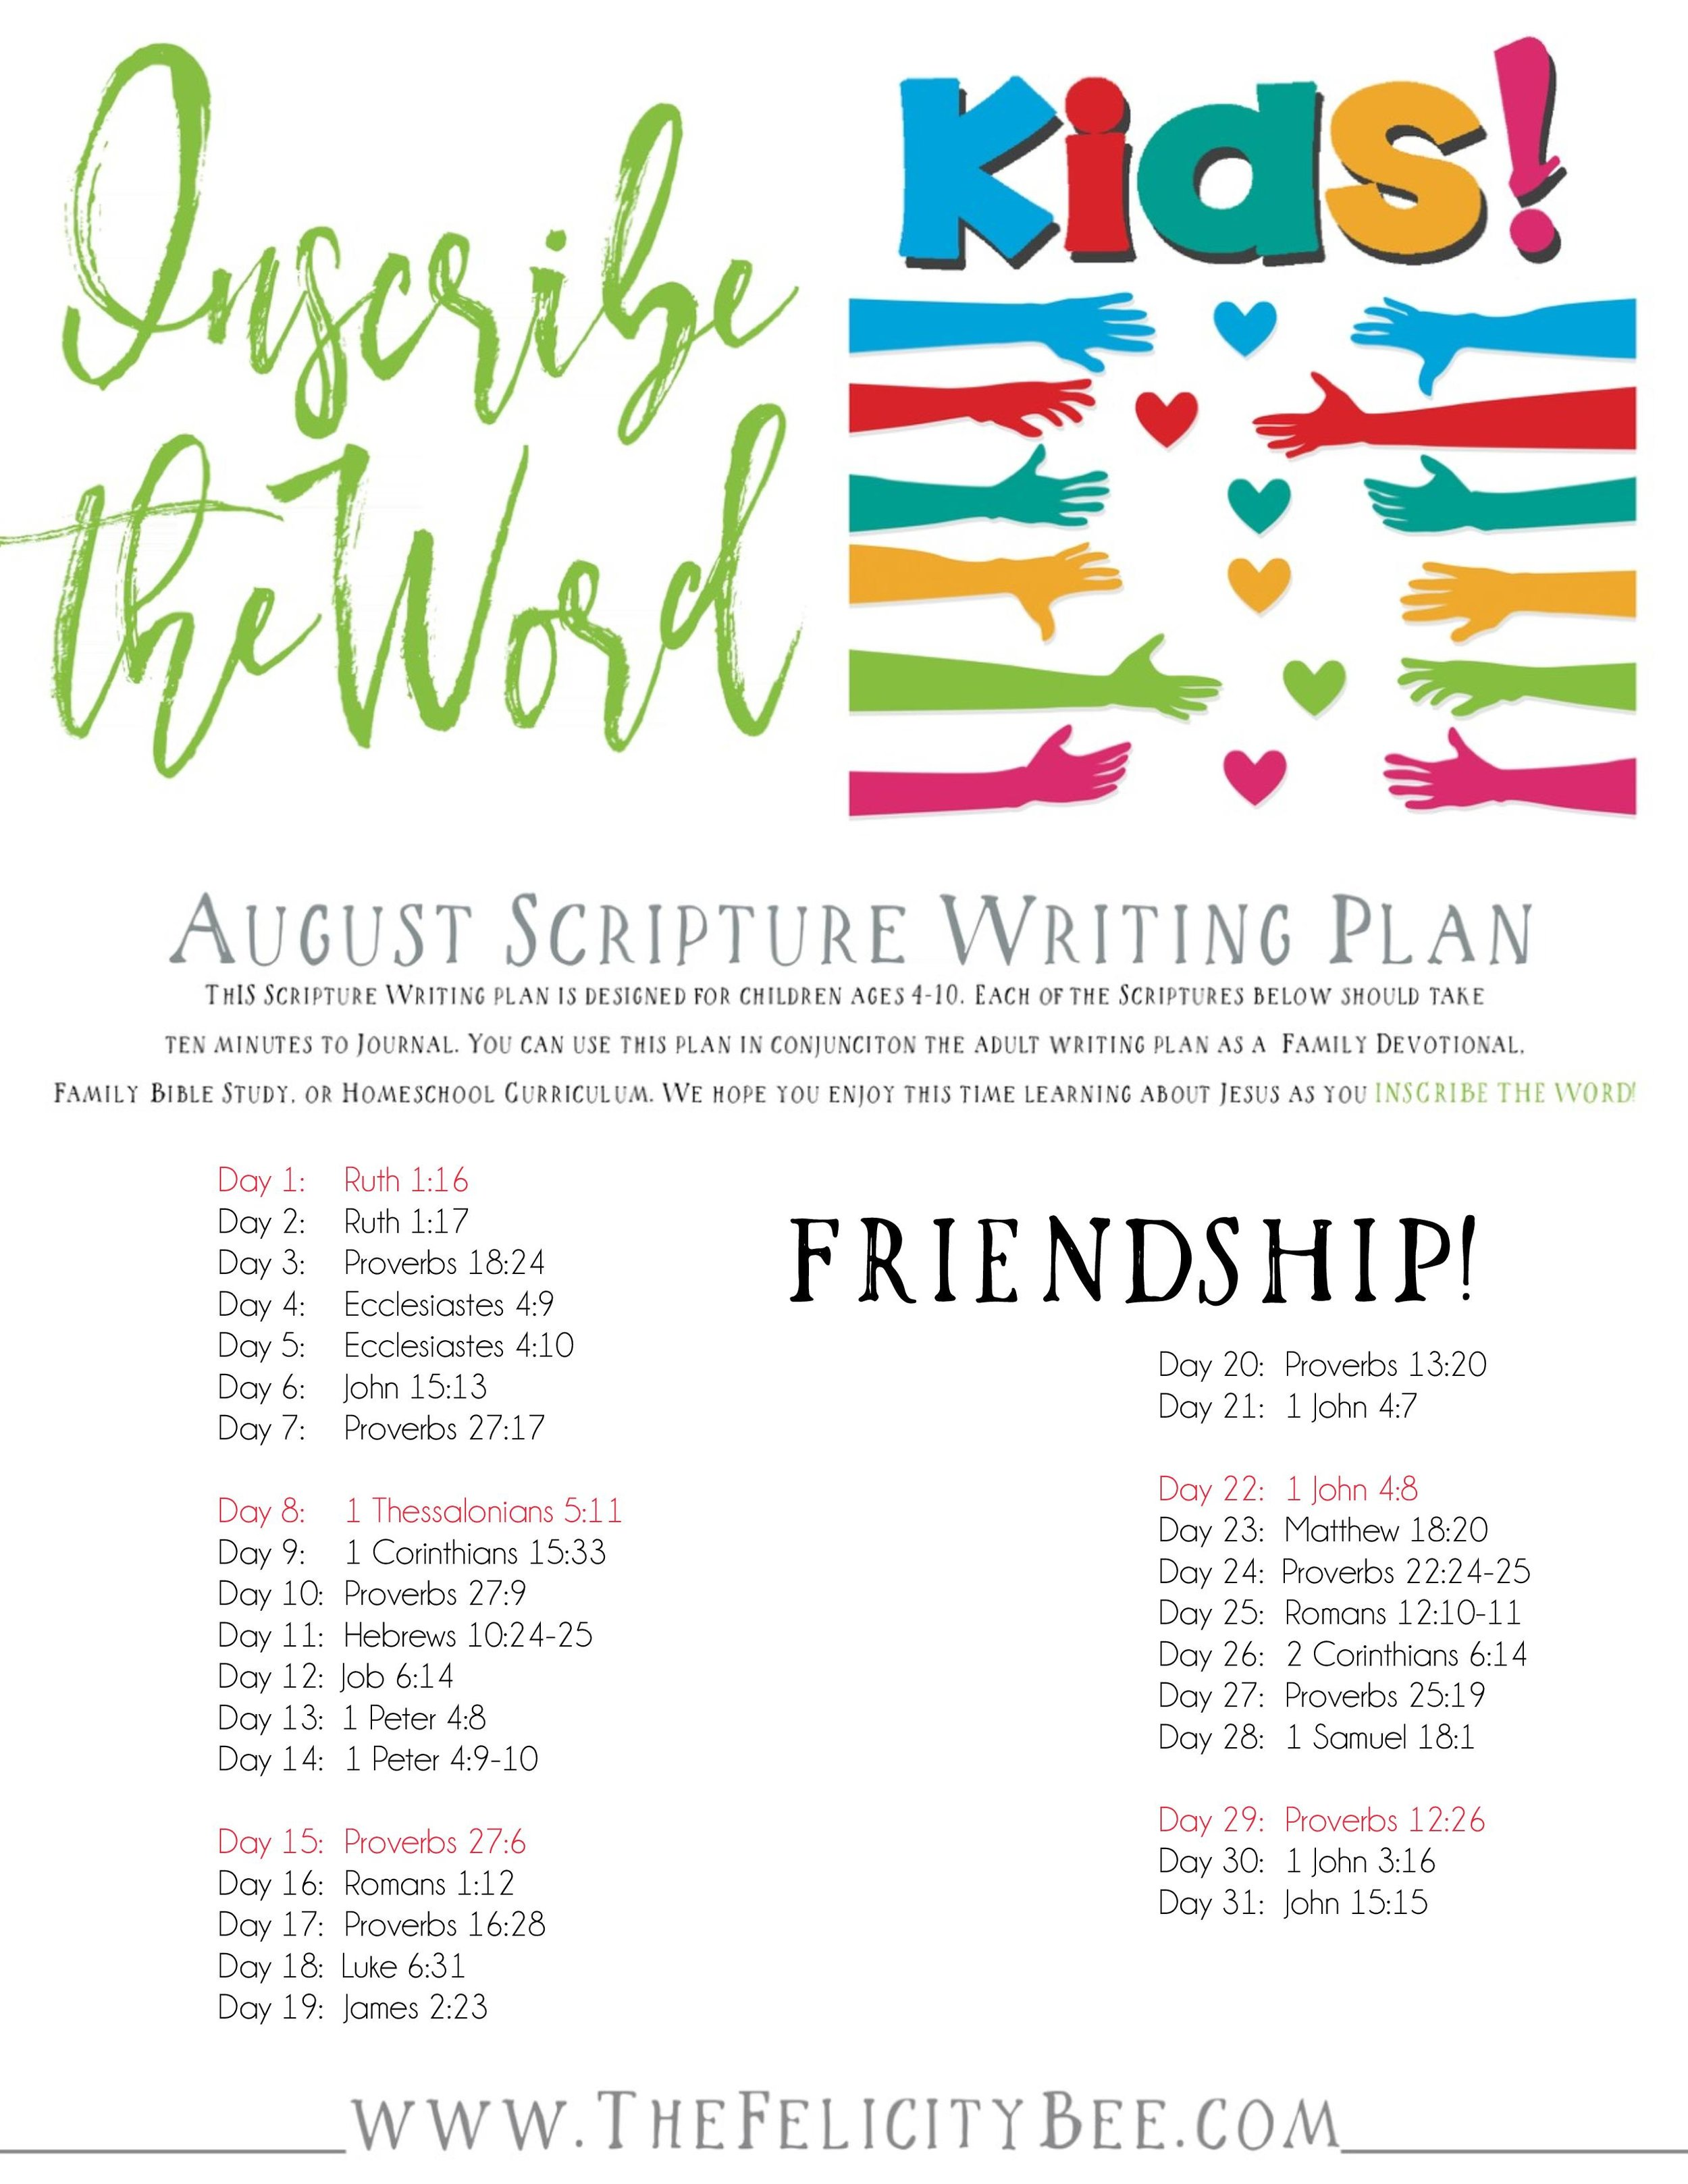 Join us this April as we Inscribe what the Bible says about friendship. A wonderful Bible Study for our kids to learn how to be a friend the Biblical way.